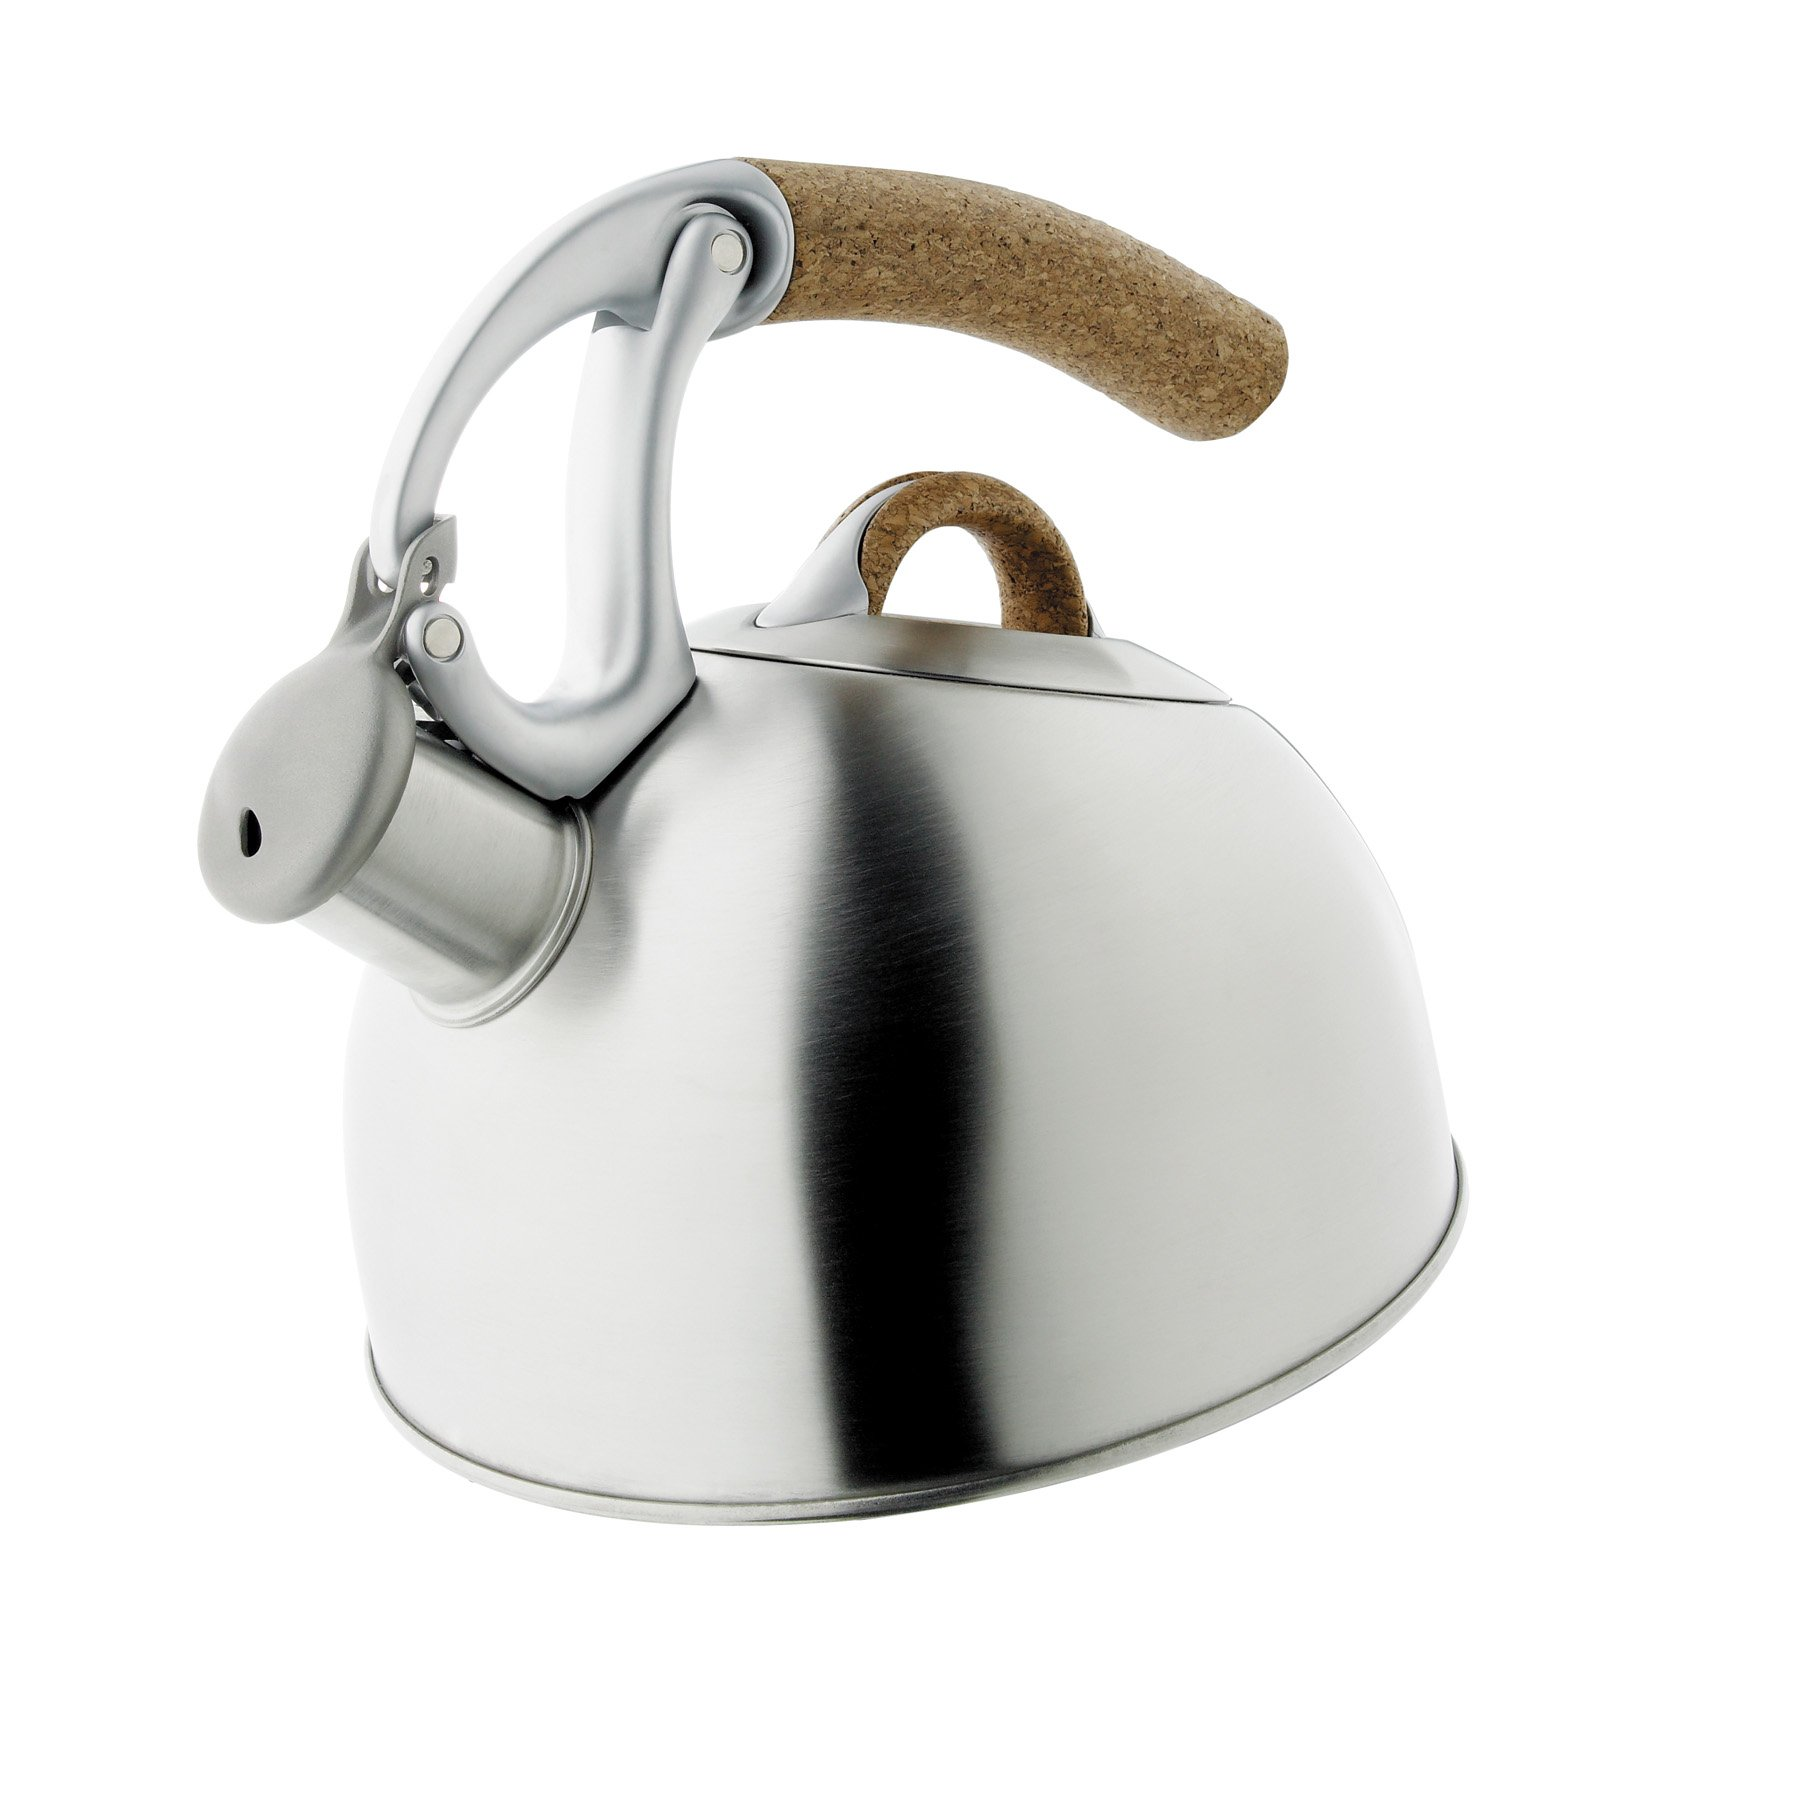 OXO Good Grips Anniversary Edition Uplift Tea Kettle, Brushed Stainless Steel